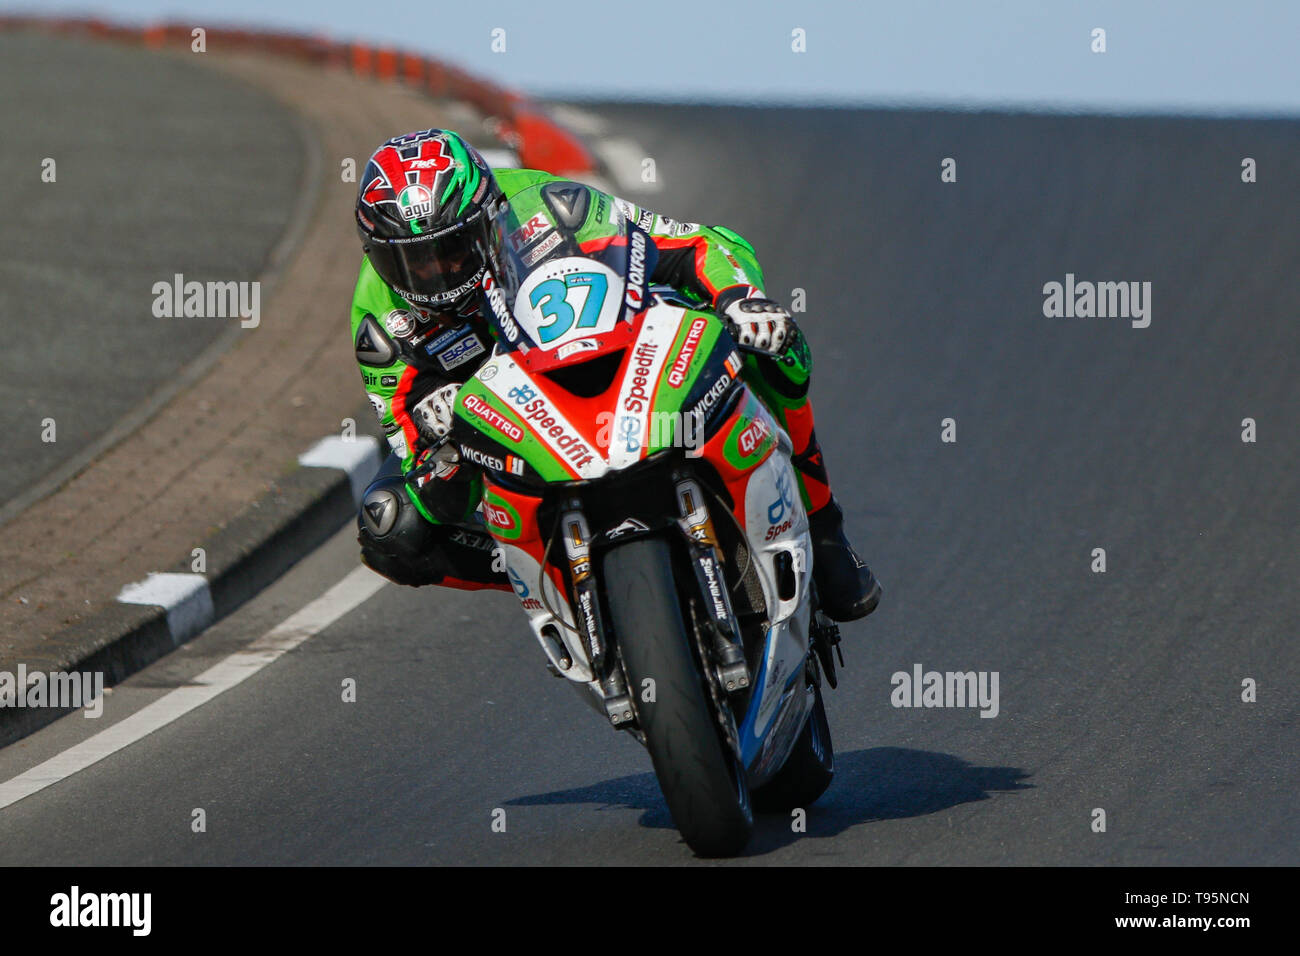 Portrush, Northern Ireland. 16th May, 2019. International North West 200 Motorcycle road racing, Thursday practice and evening racing; James Hillier finishes in 3rd place on the Quattro Plant Wicked Coatings Kawasaki during the SuperSport race Credit: Action Plus Sports/Alamy Live News - Stock Image